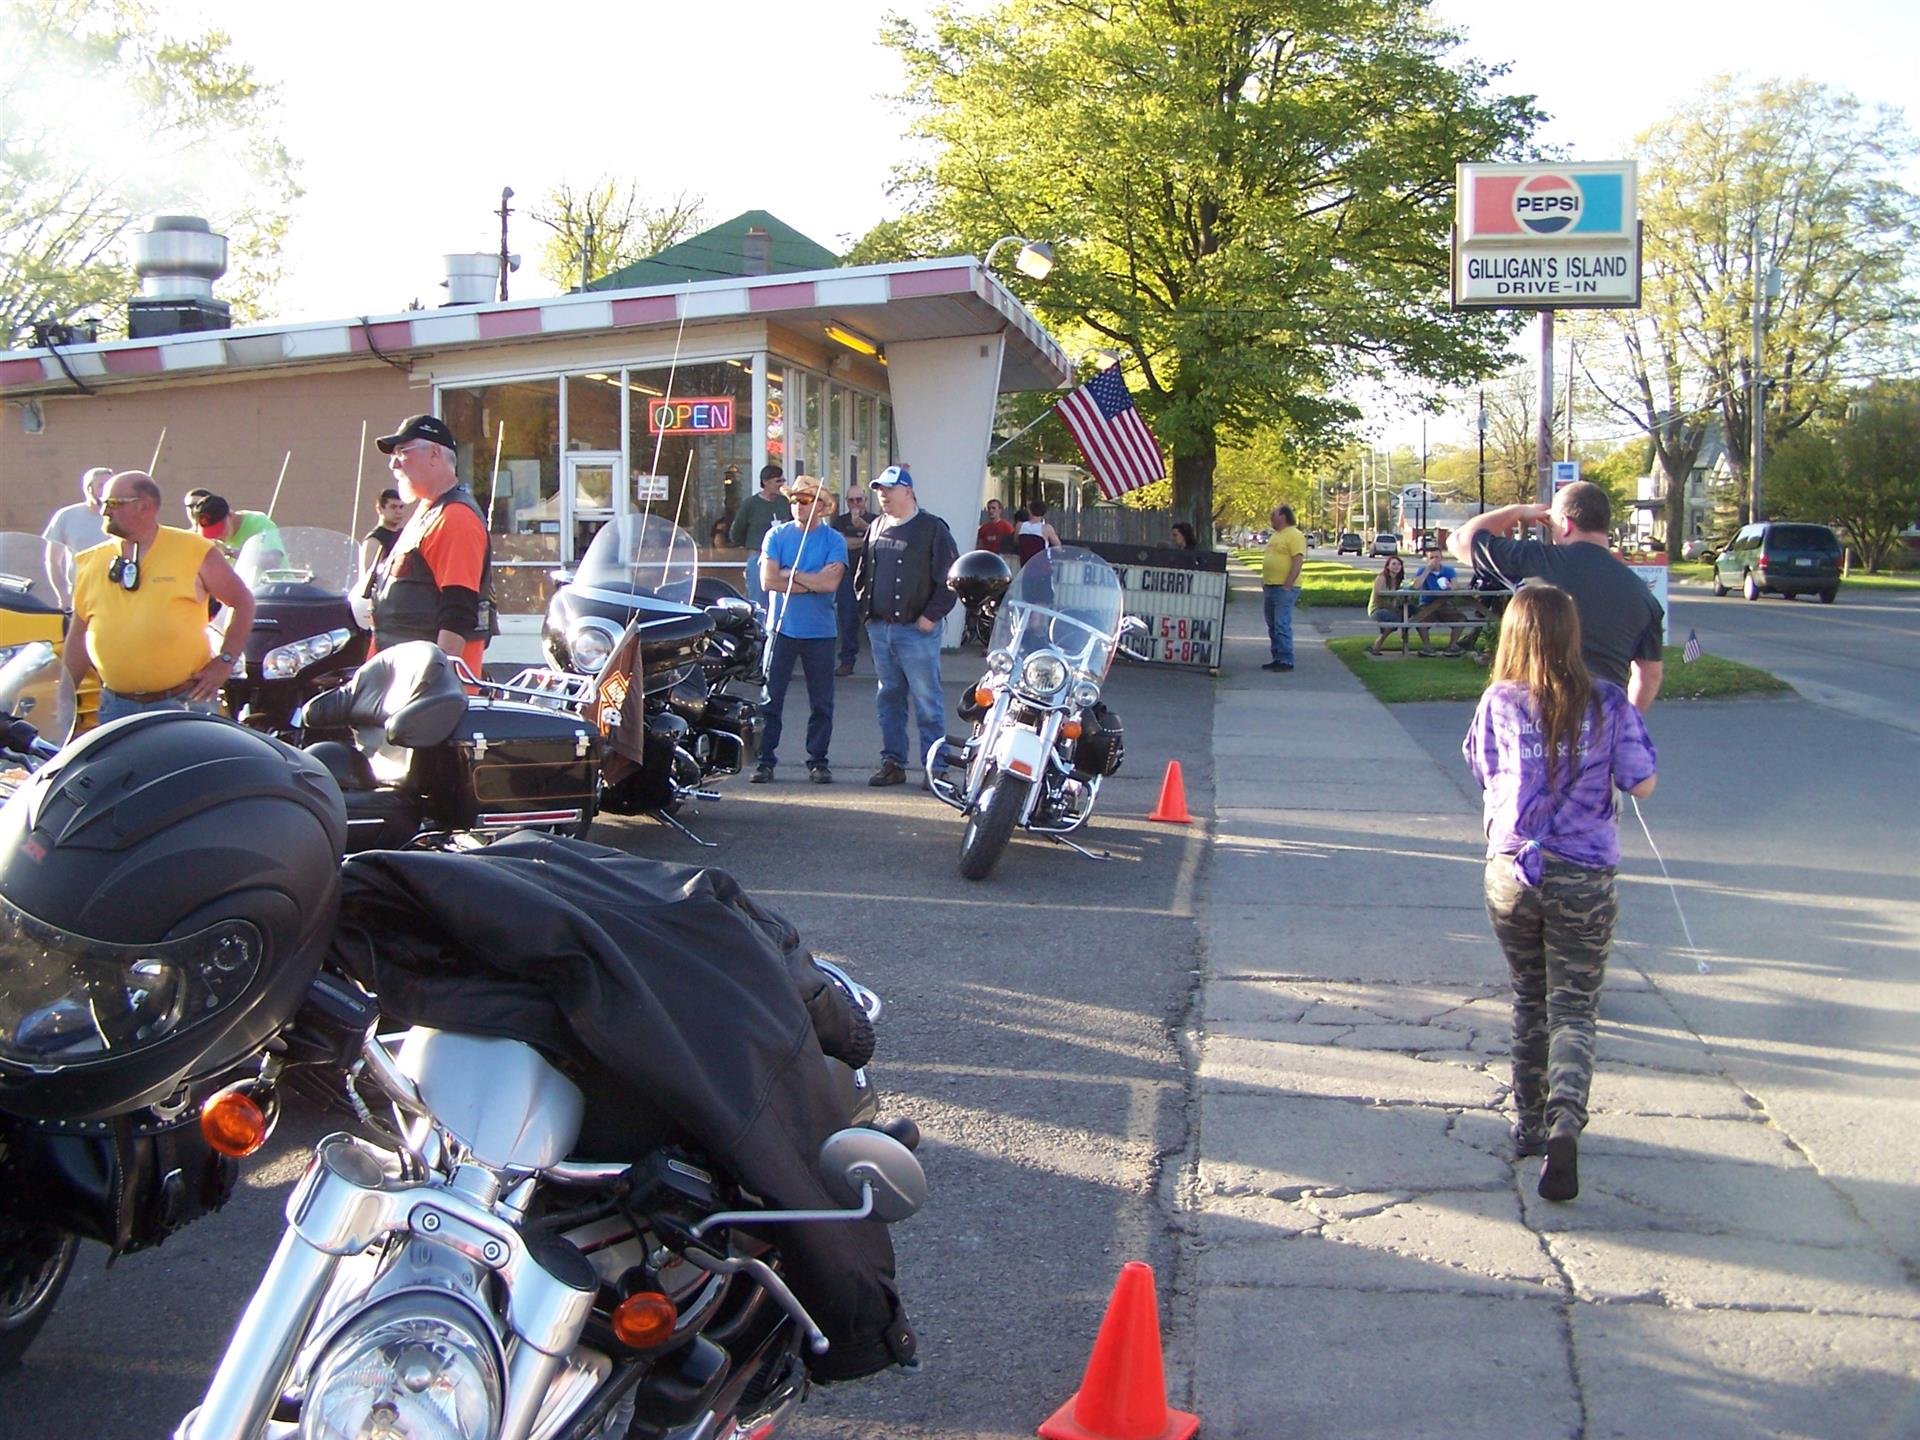 People in parking lot looking at bikes in front of Gilligans Drive In